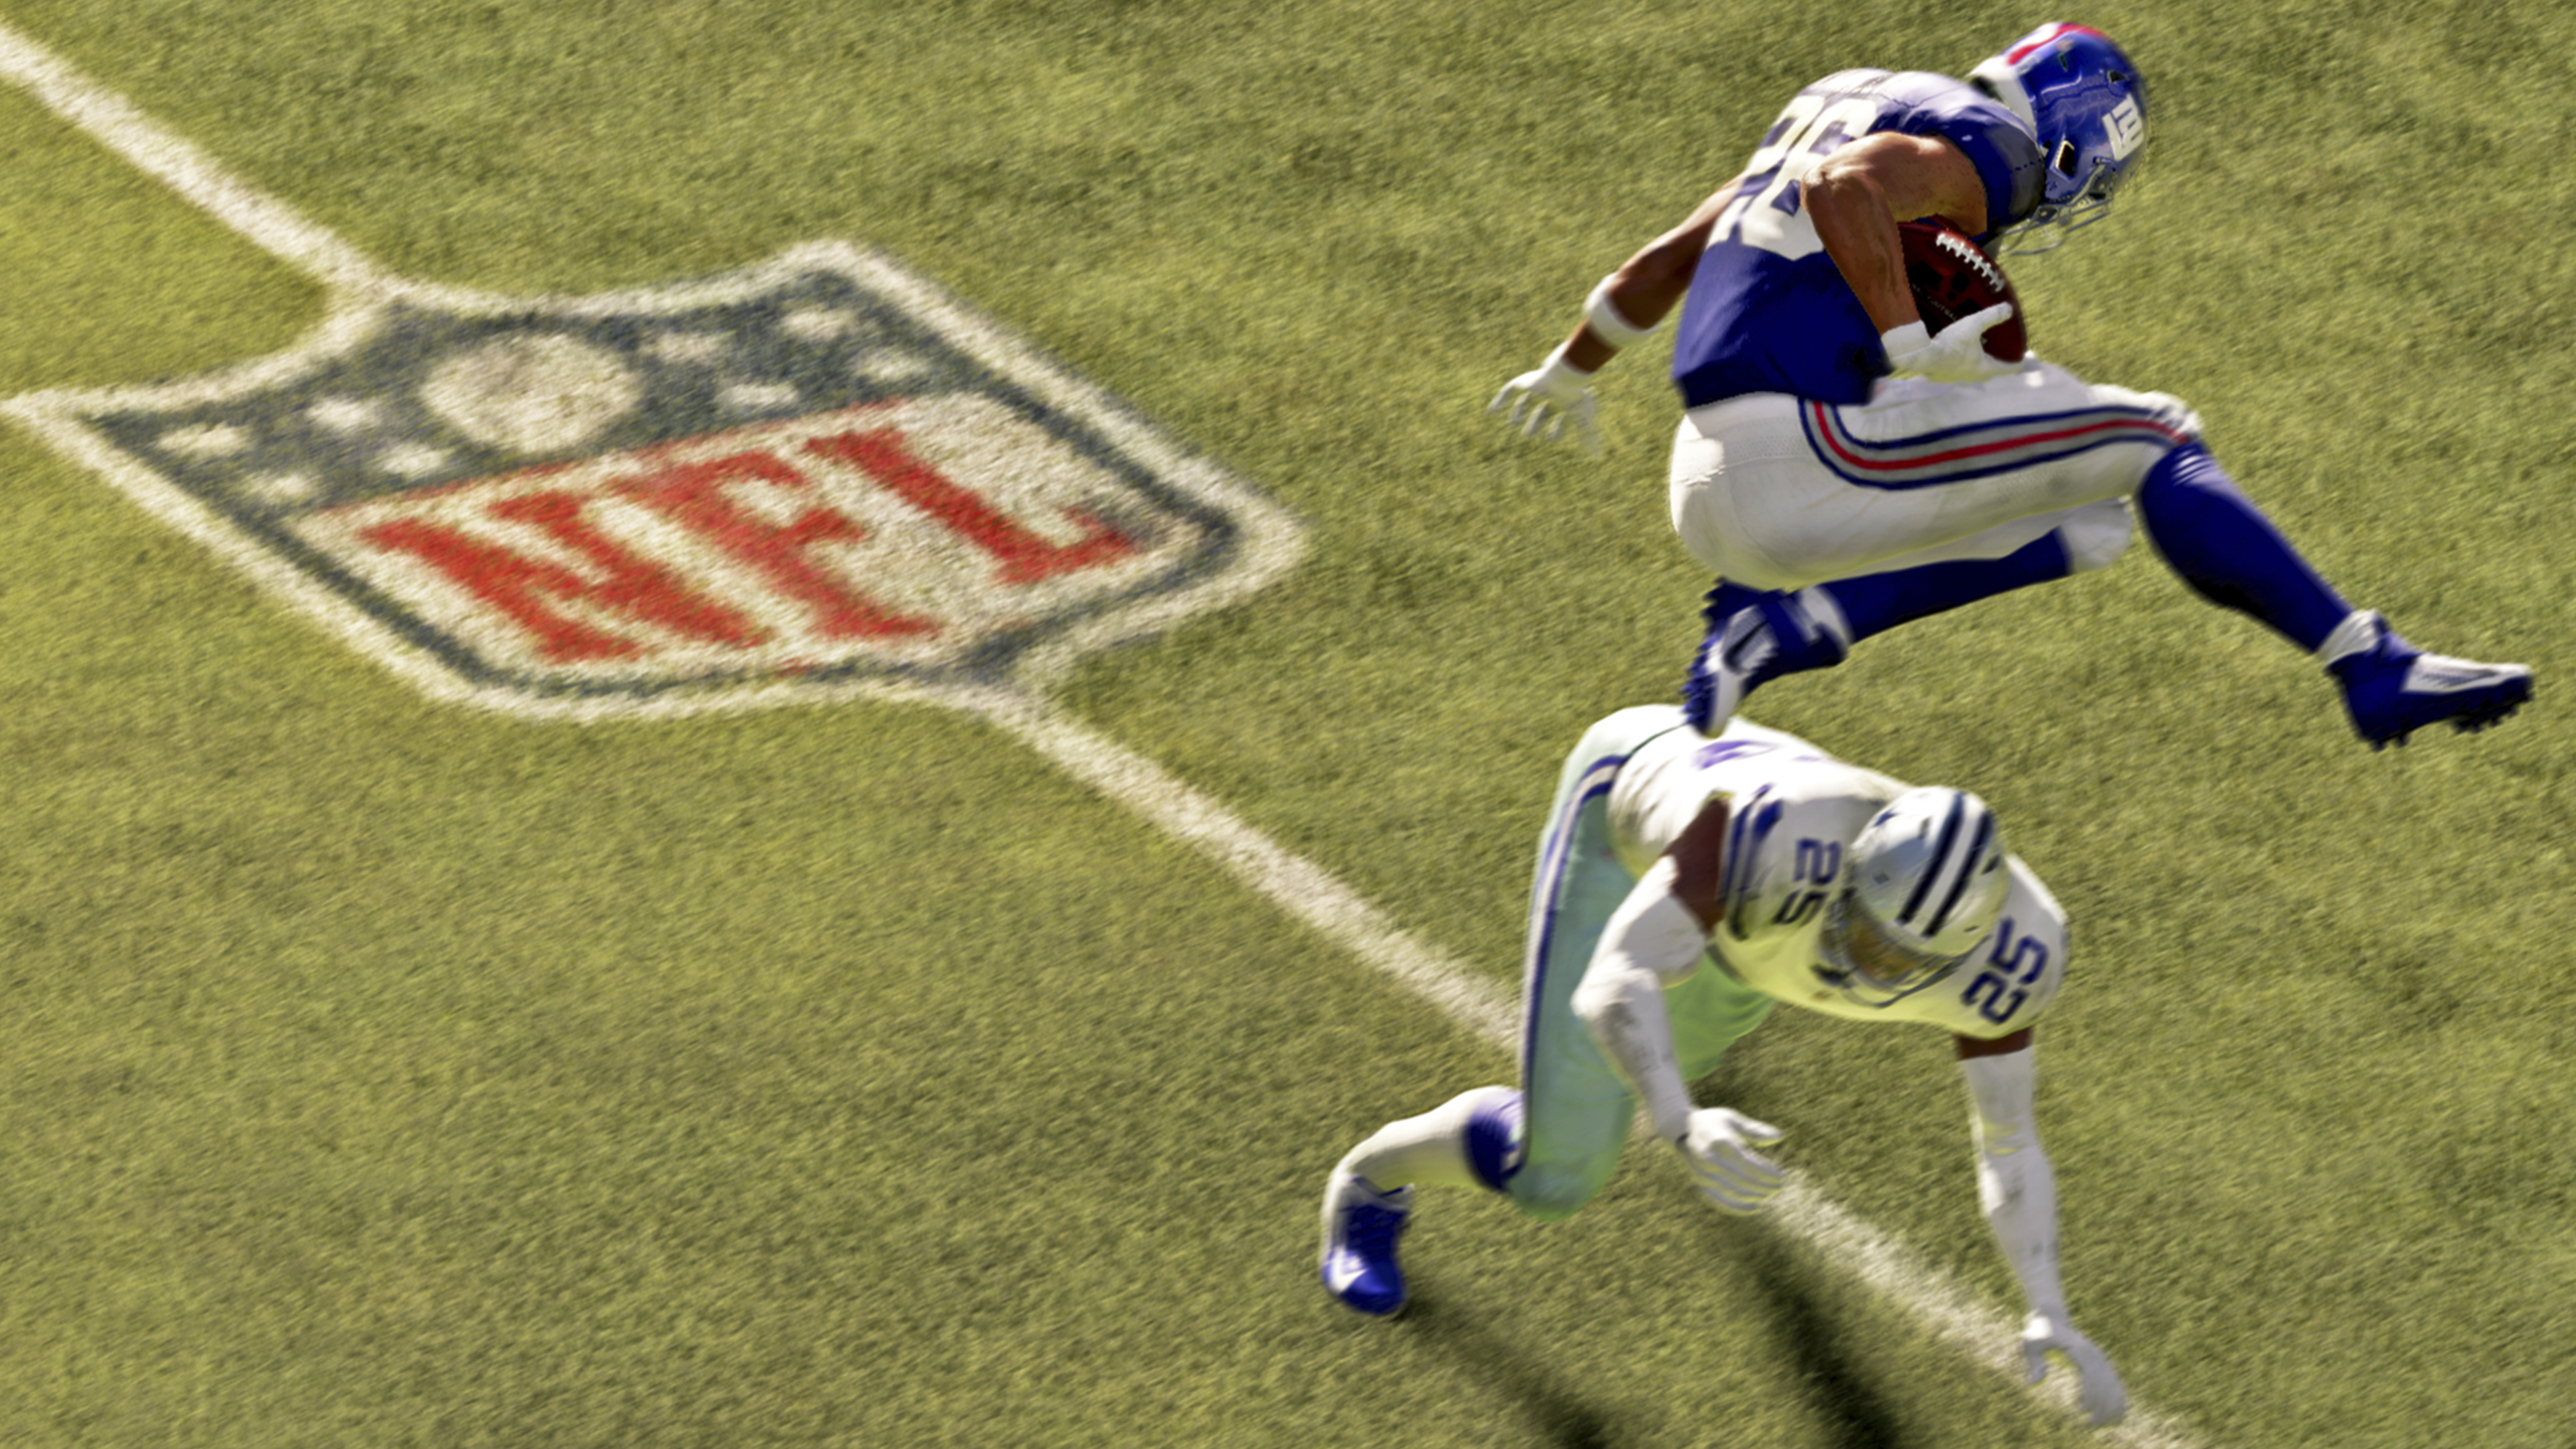 Madden NFL 21 screen